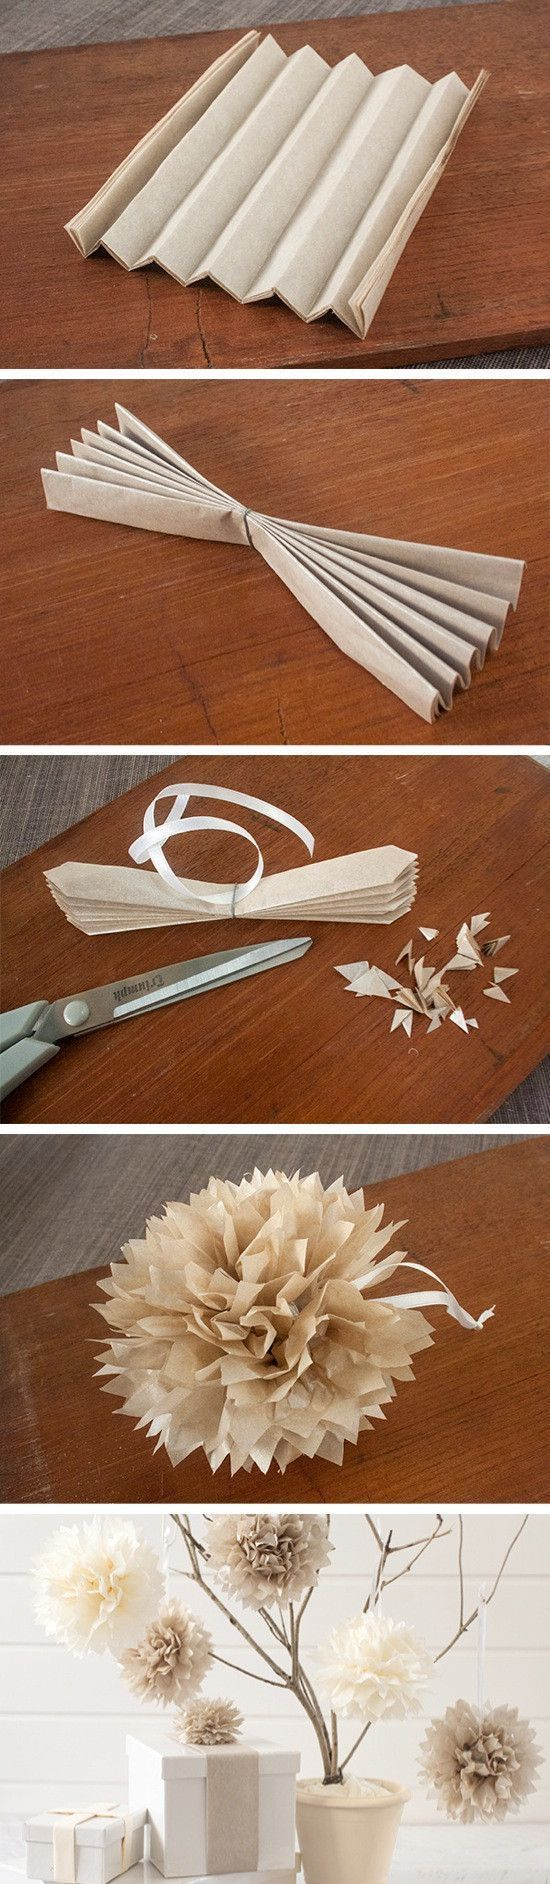 Different Ways to Make Paper Flowers  Diy creative ideas Paper